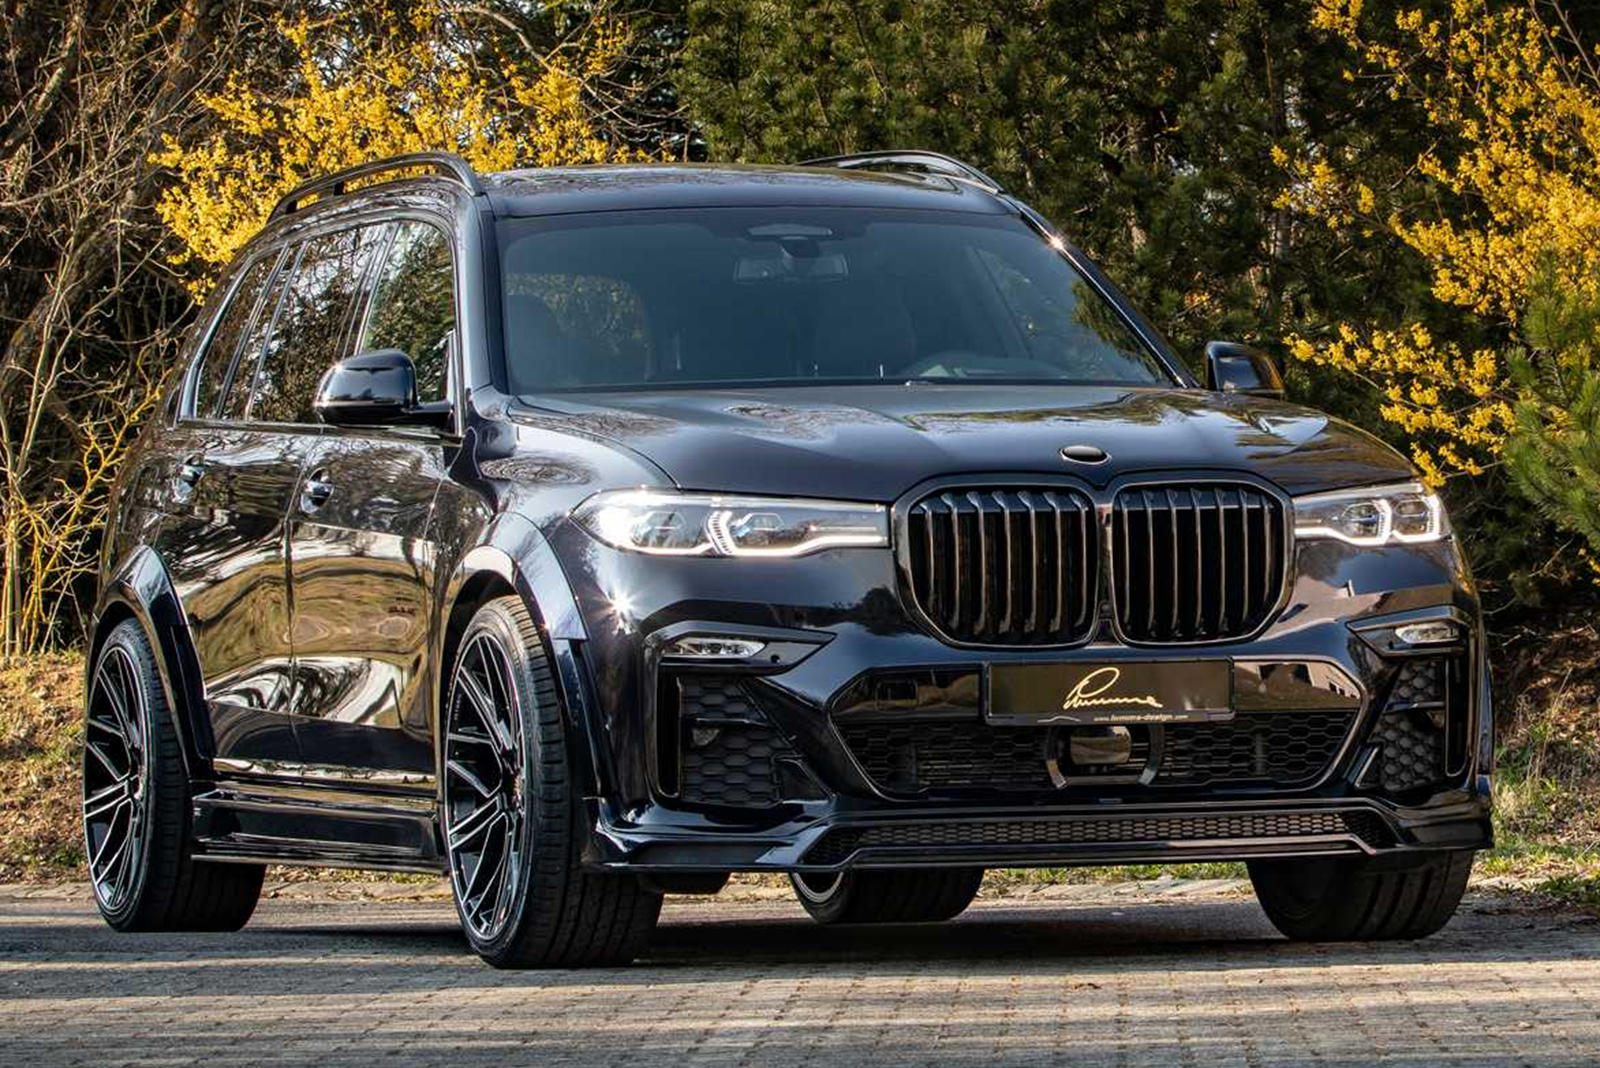 Bmw X7 Widebody Is One Mean Looking Suv Carbuzz